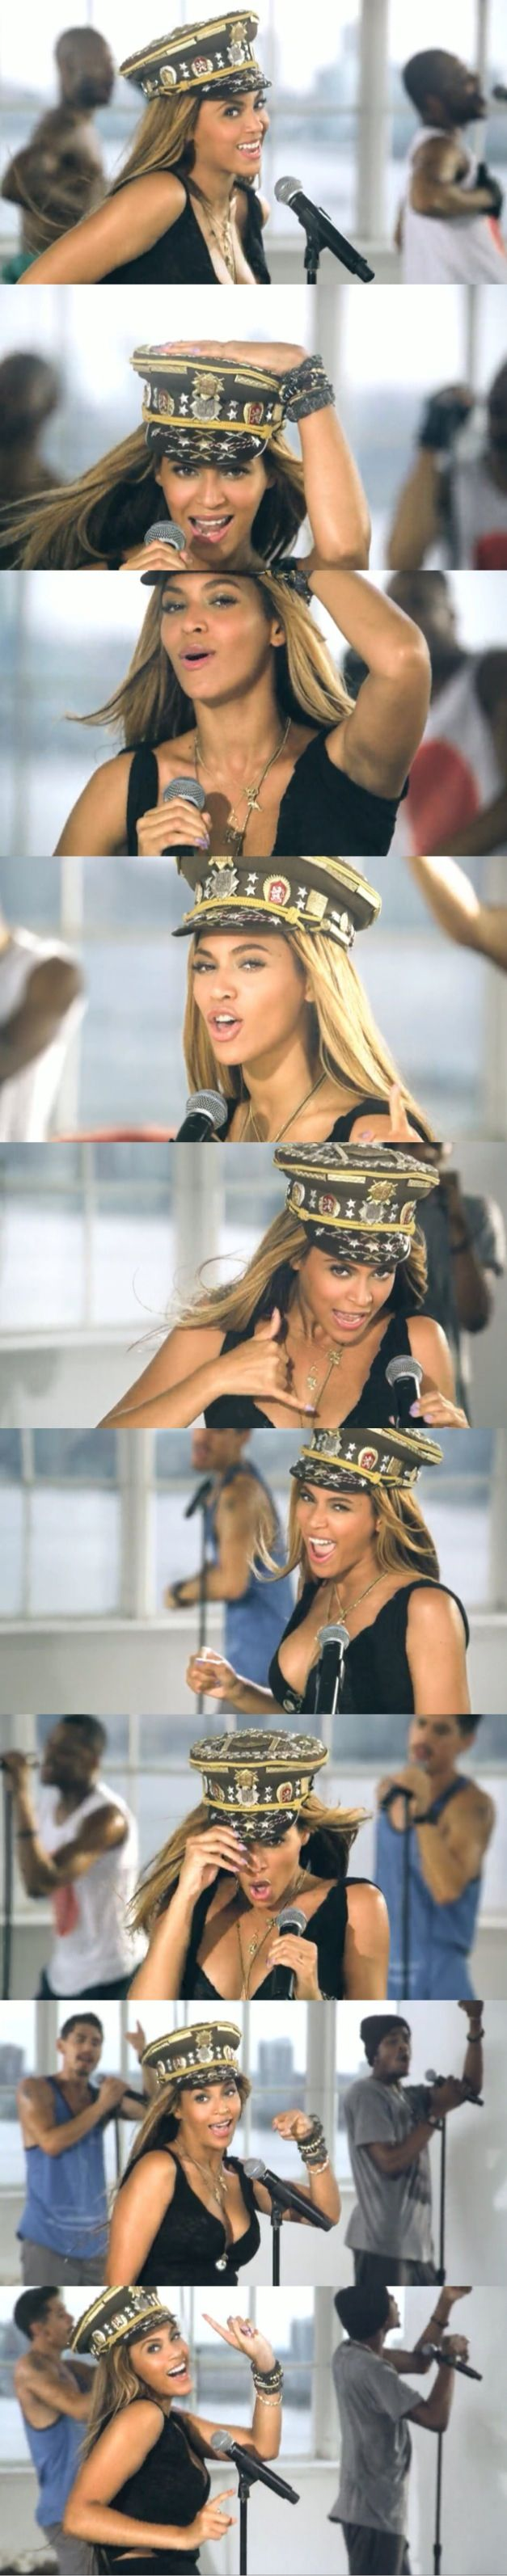 Beyonce - Love On Top Music Video